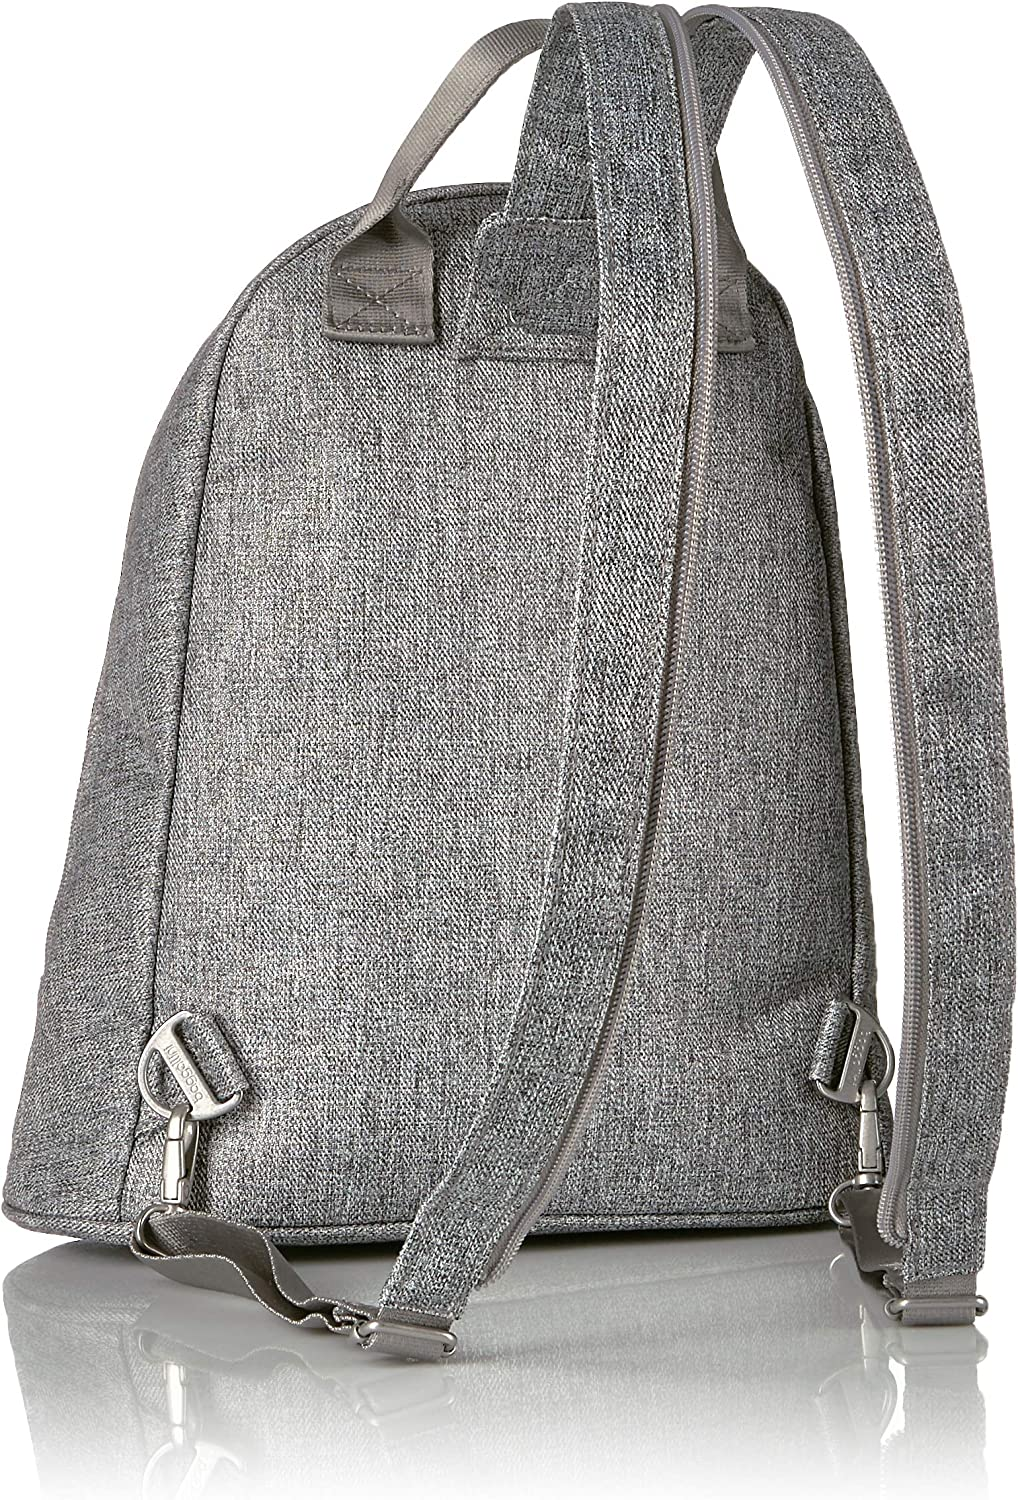 Travel Bag Converts to Wear as a Sling Mini Backpack With Gold Backpack Hardware Stylish Baggallini Dallas Lightweight